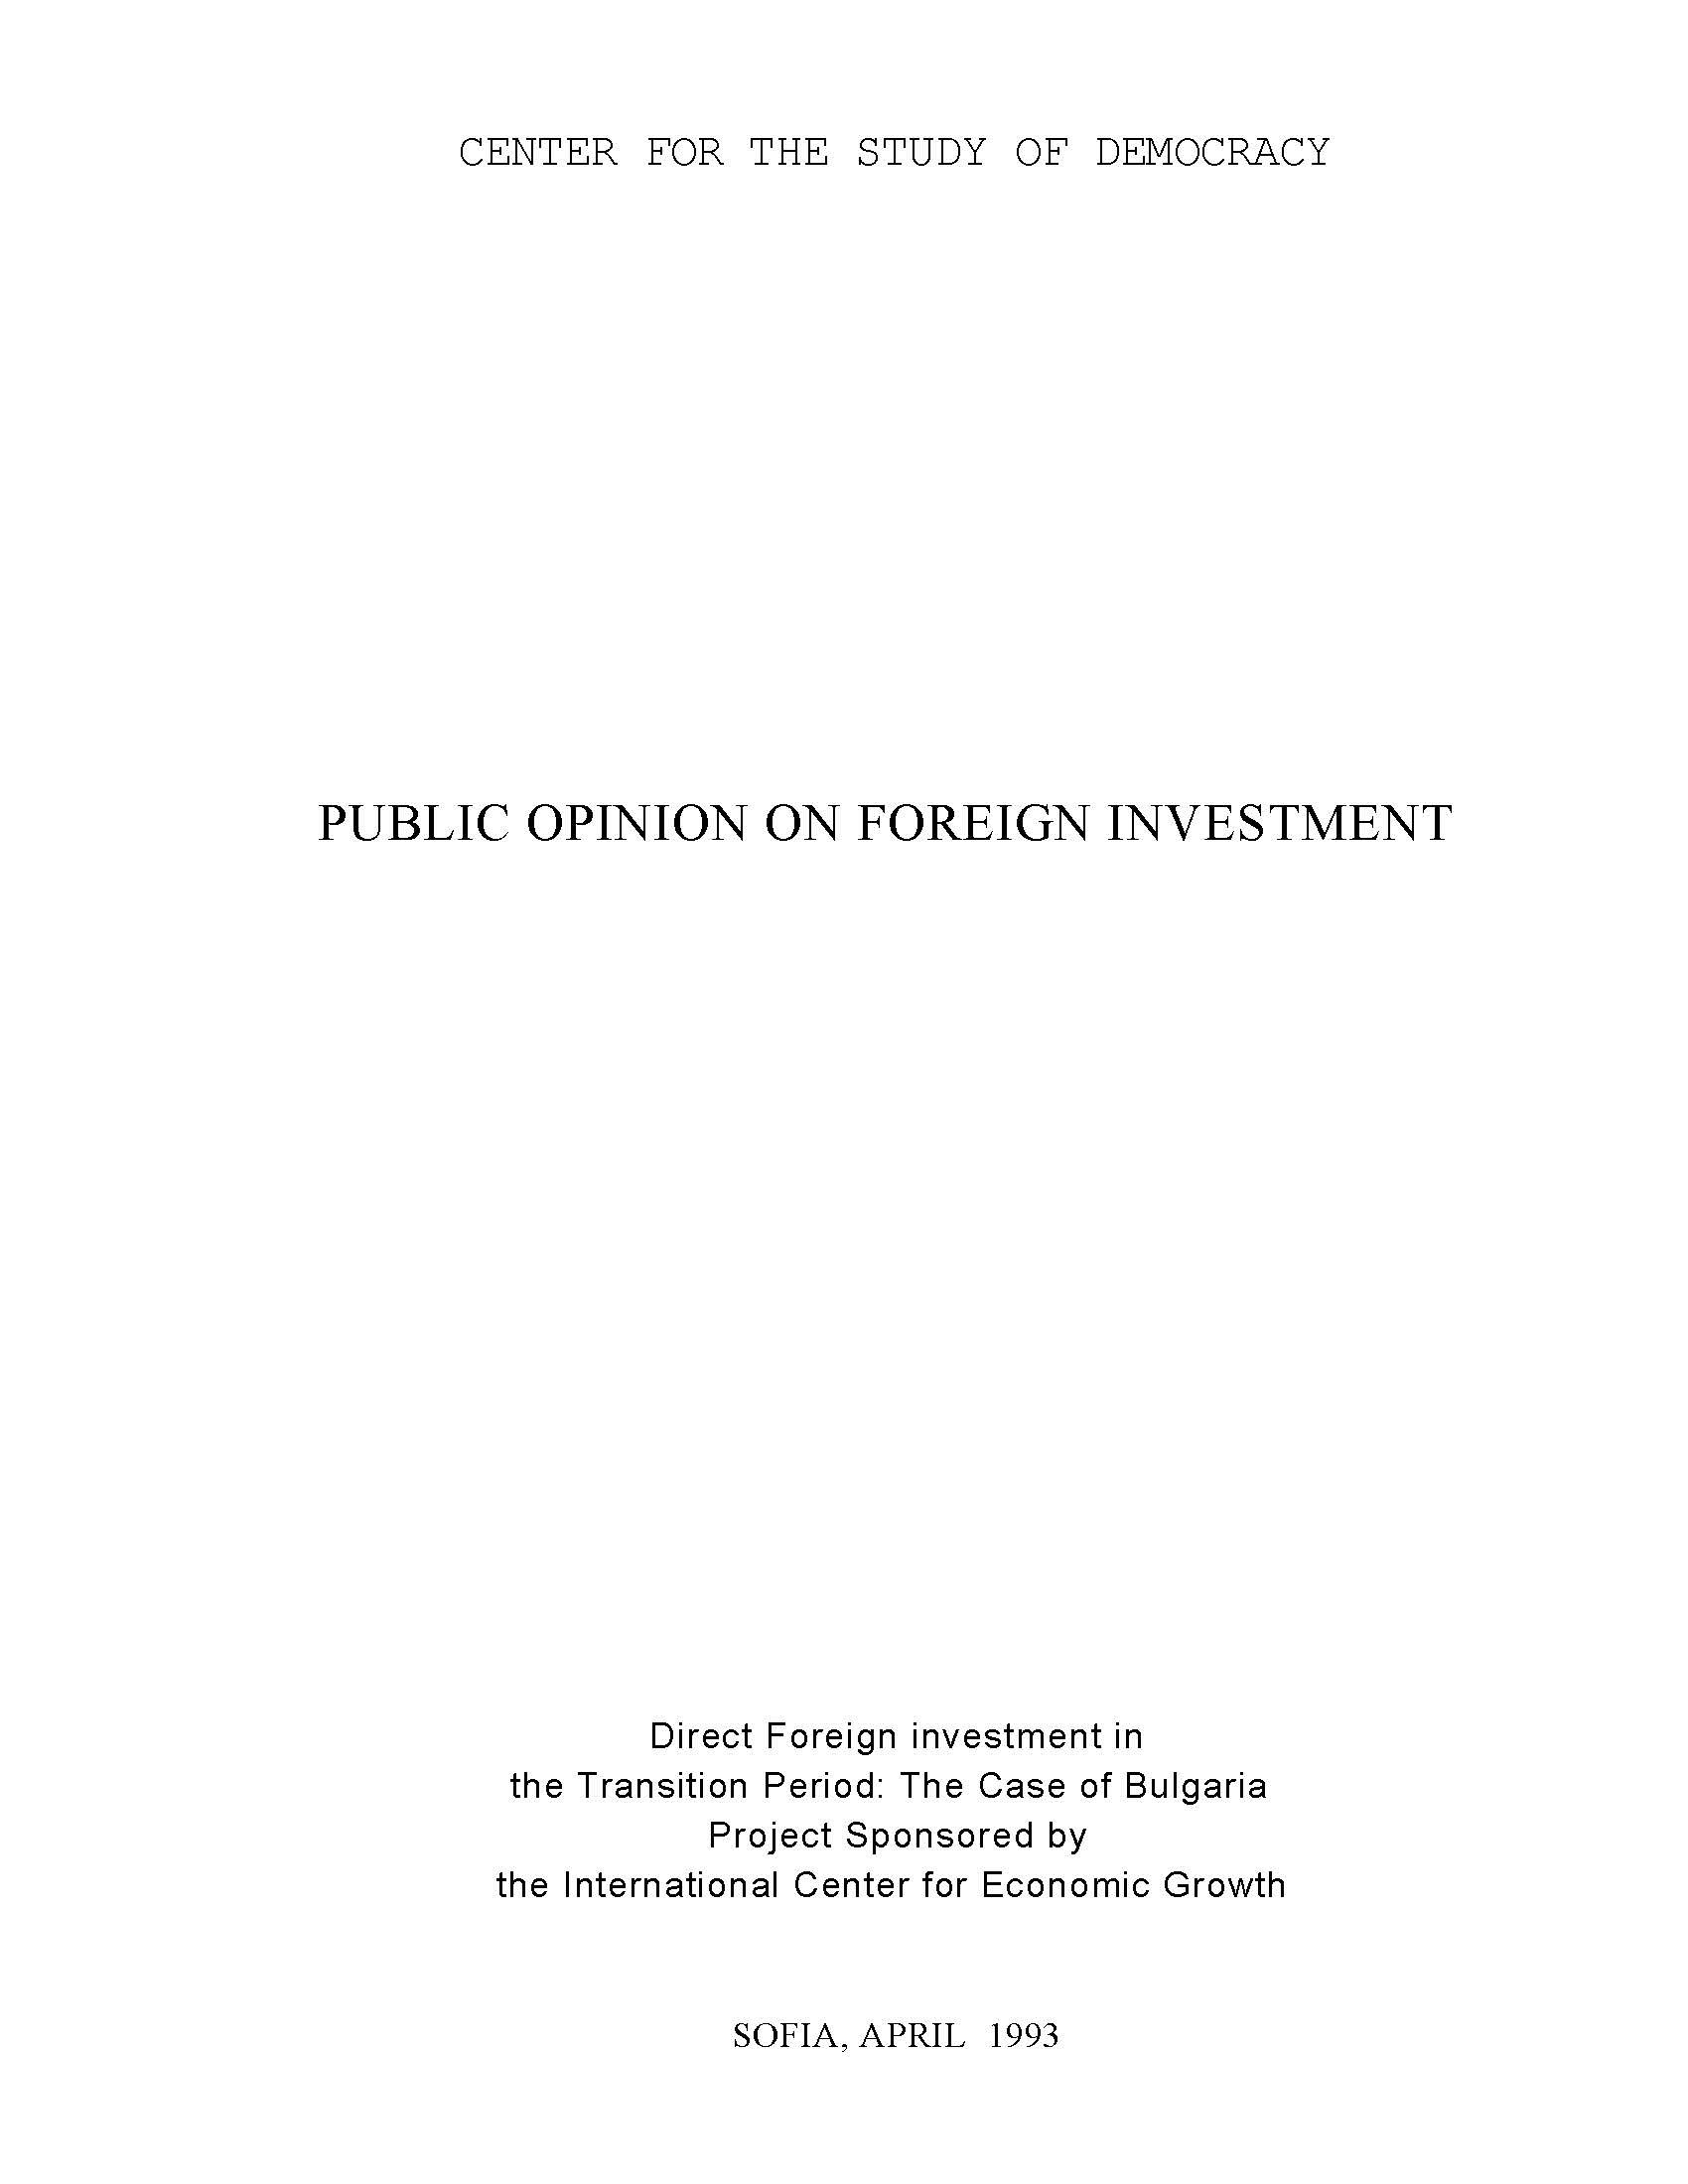 Public Opinion on Foreign Investment, April 1993